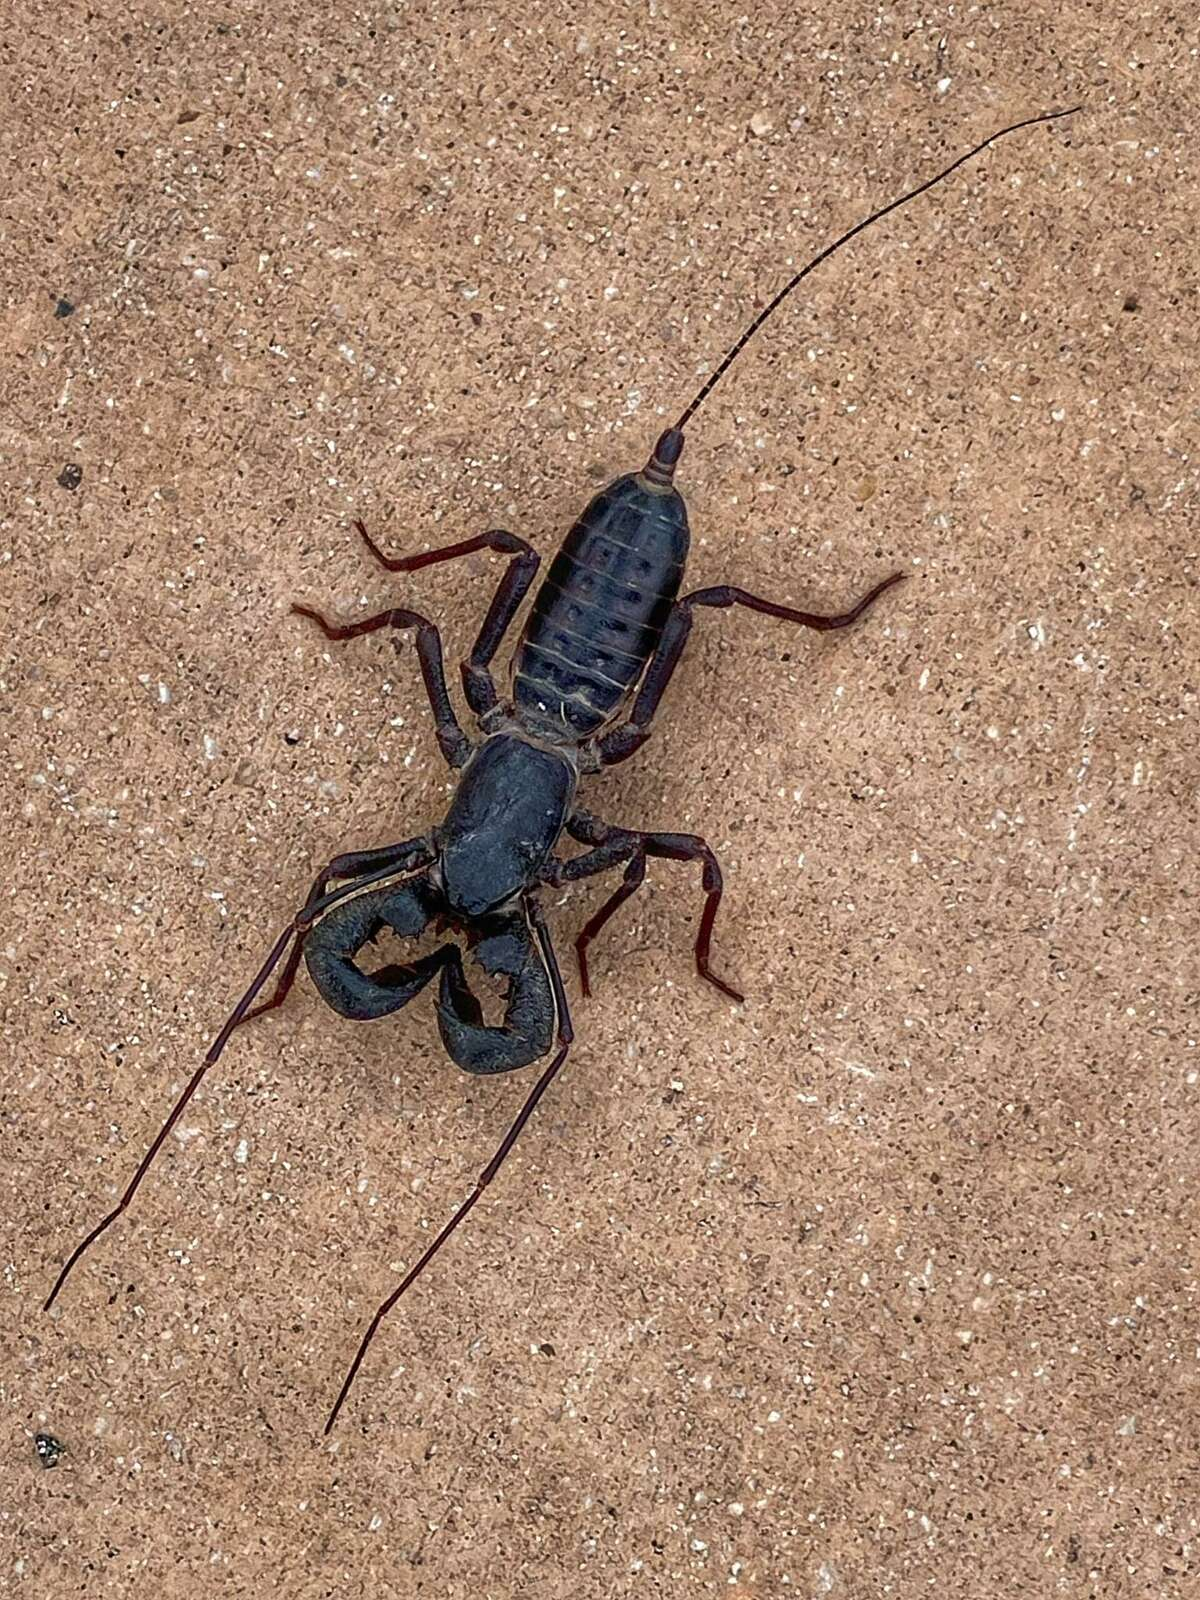 """""""Vinegaroons,"""" also known as whip scorpions, are a cross between a spider and a scorpion. (Big Bend National Park/NPS/CA Hoyt)"""